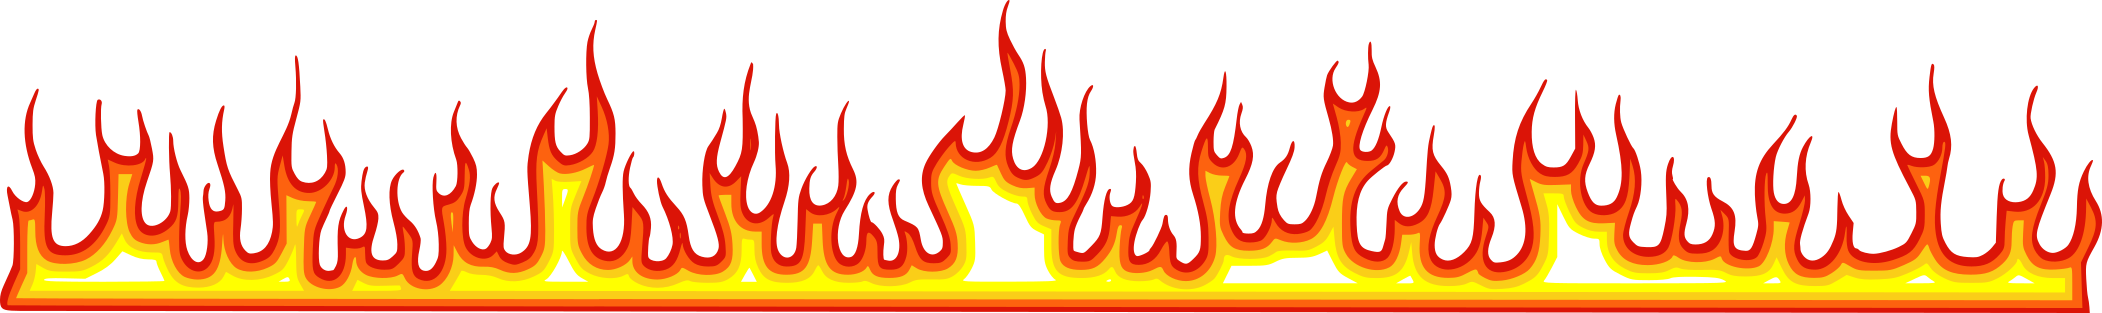 cartoon-fire-border-line-4.png